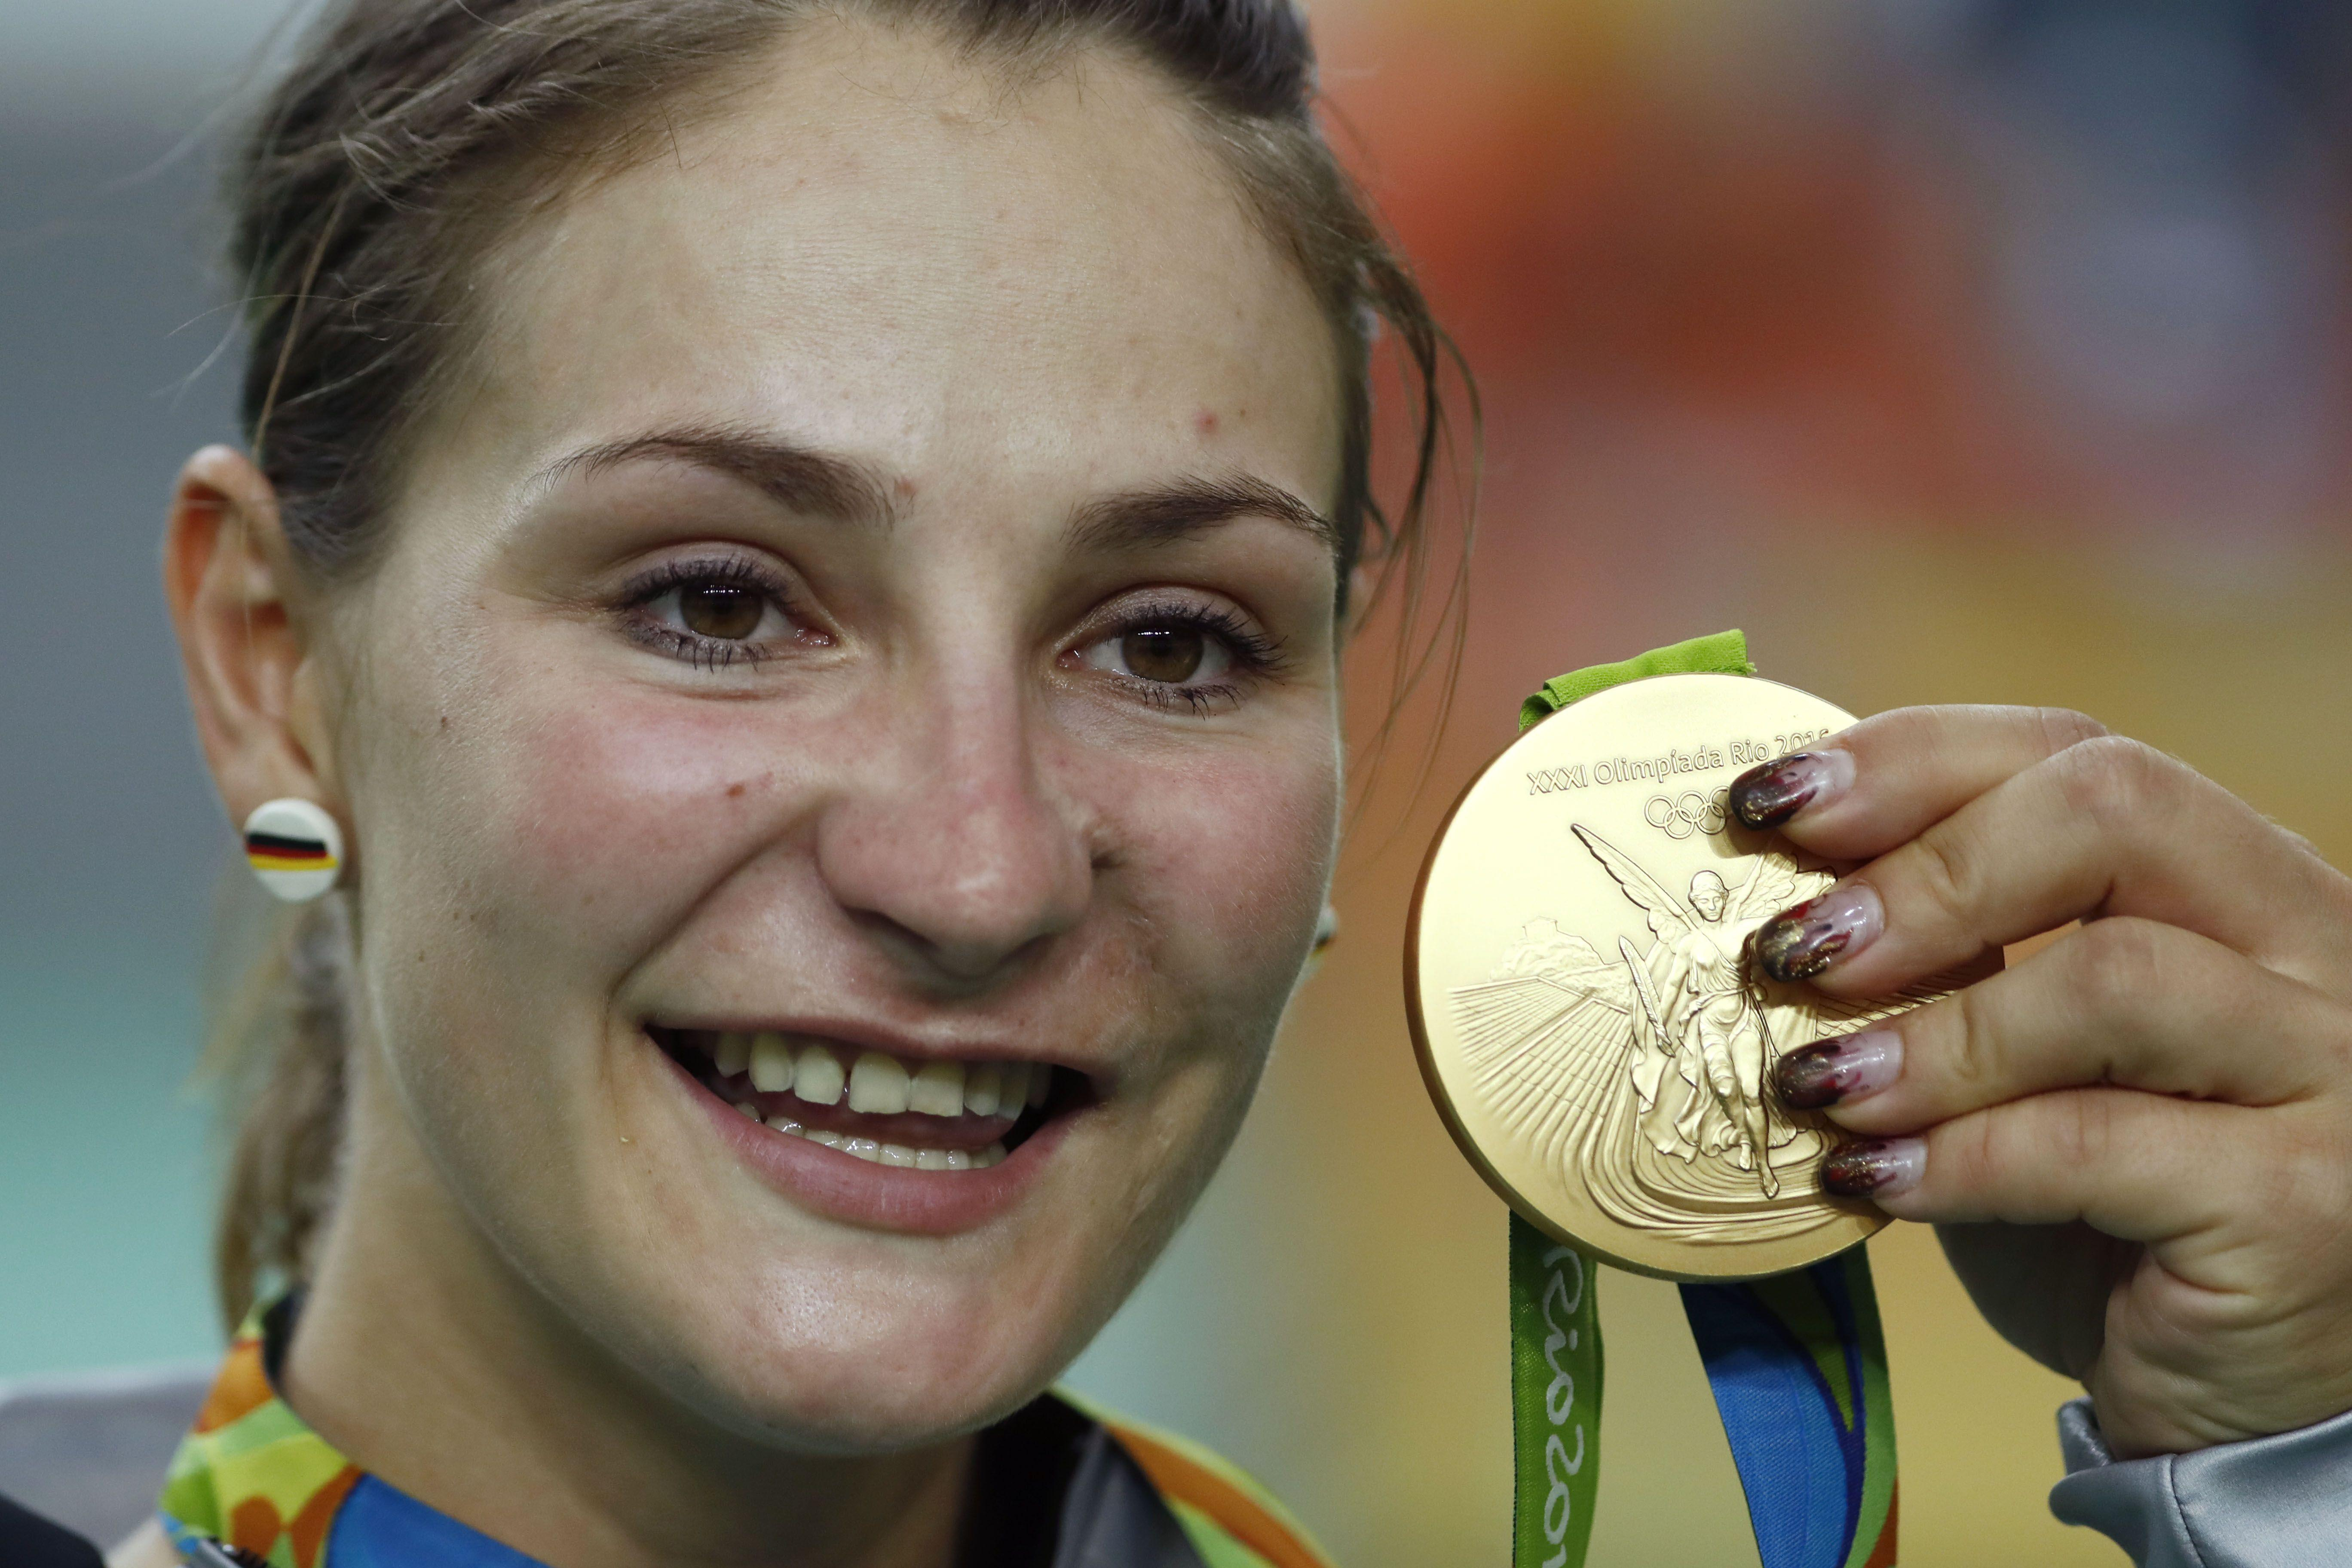 Vogel claimed Olympic gold medals at London 2012 and Rio 2016